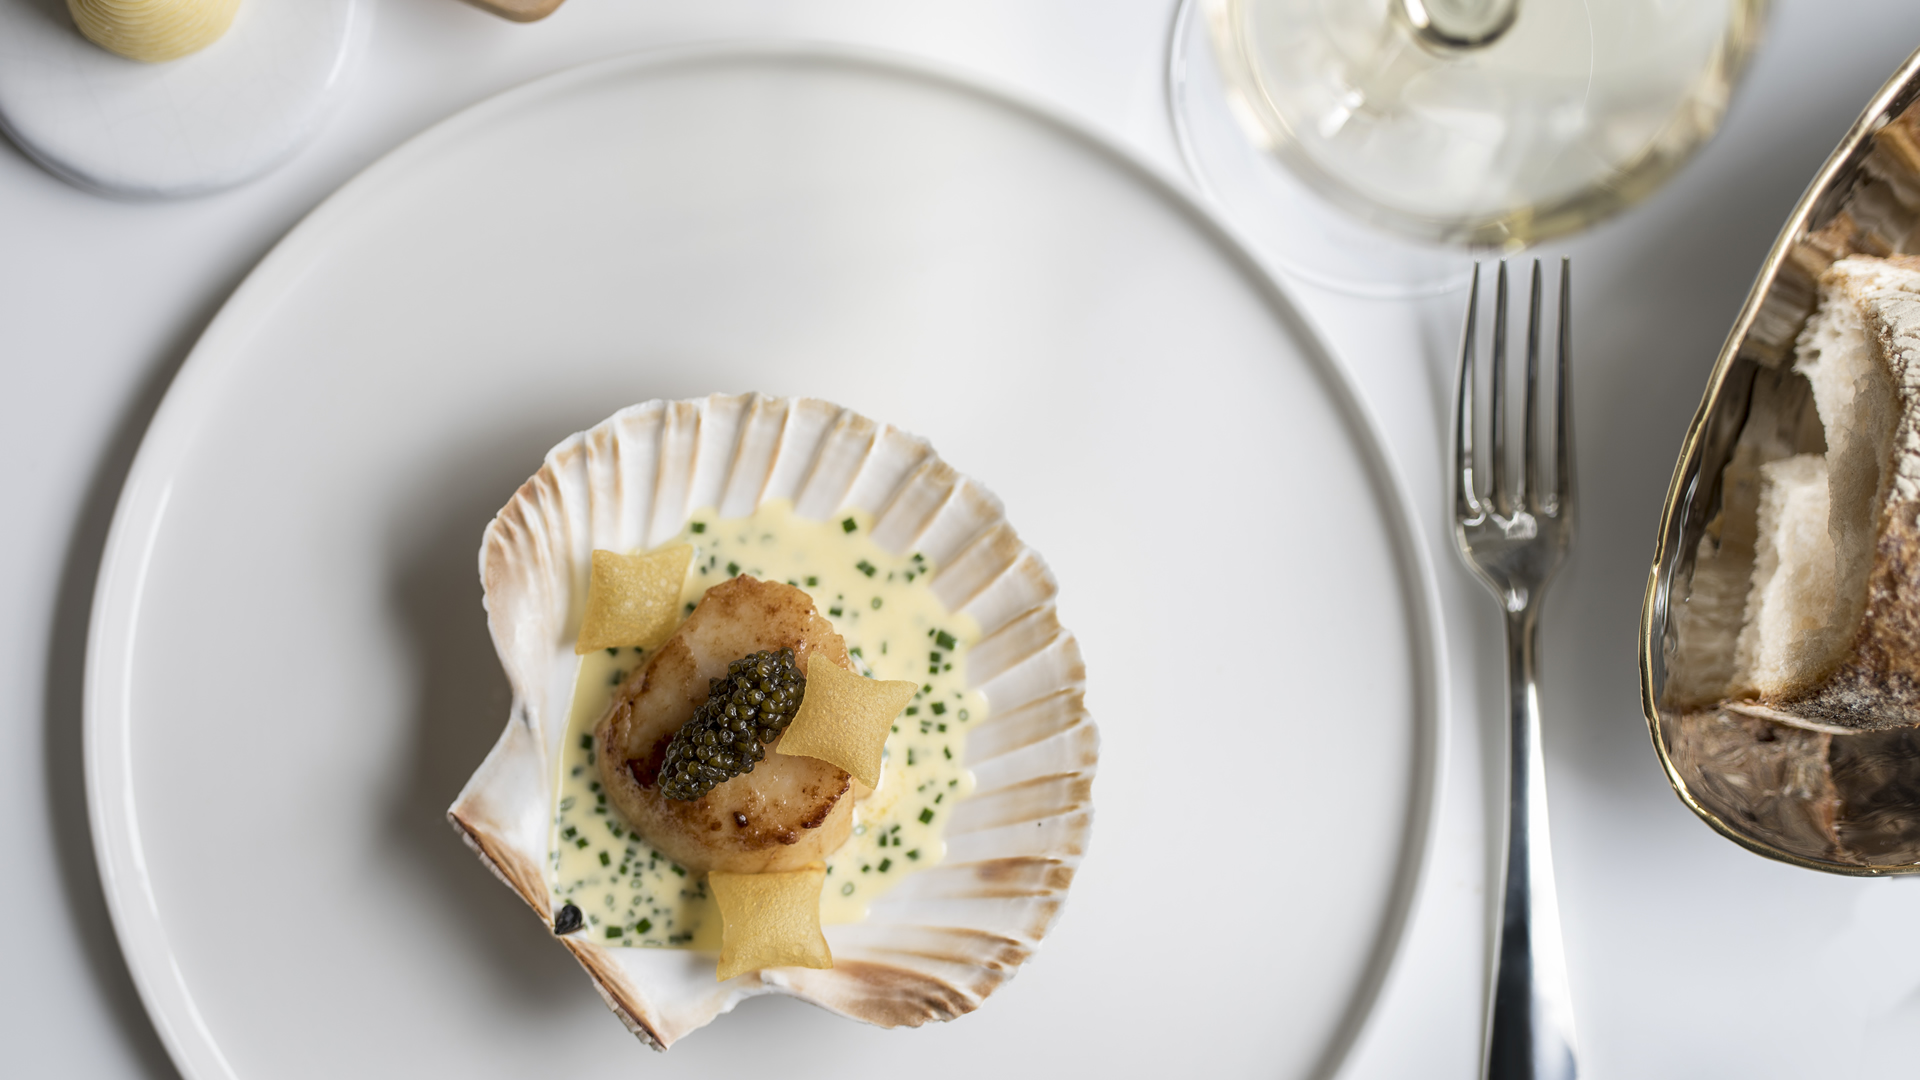 XL Orkney scallop, Ivy House farm butter, oscietra caviar_1920_1080